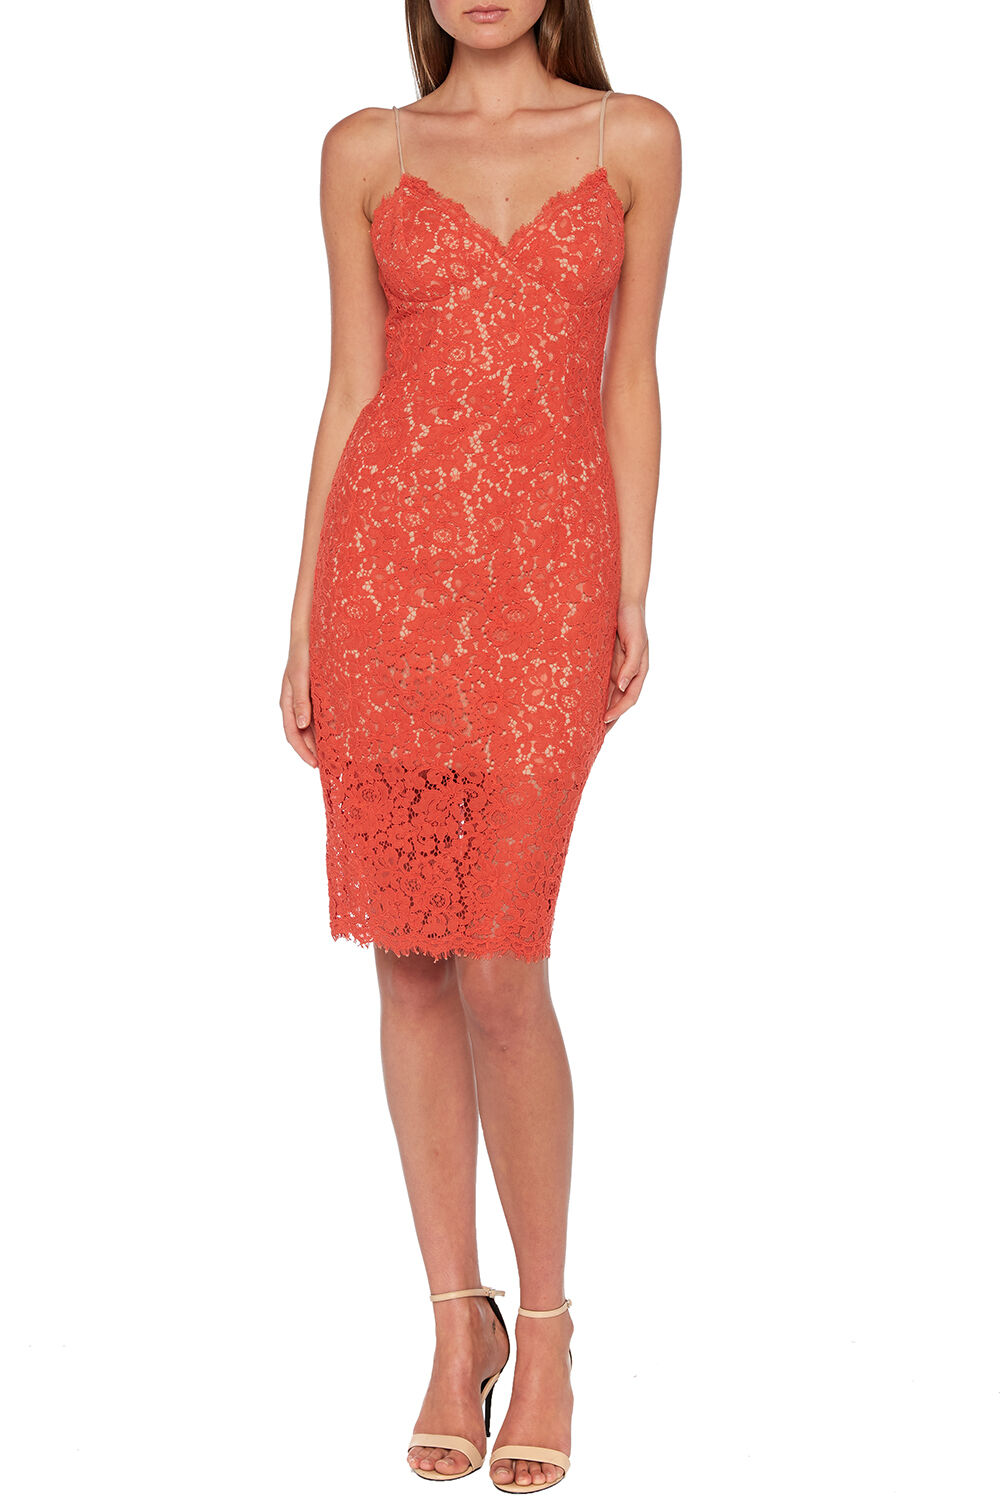 SIENNA LACE DRESS in colour PATRIOT BLUE